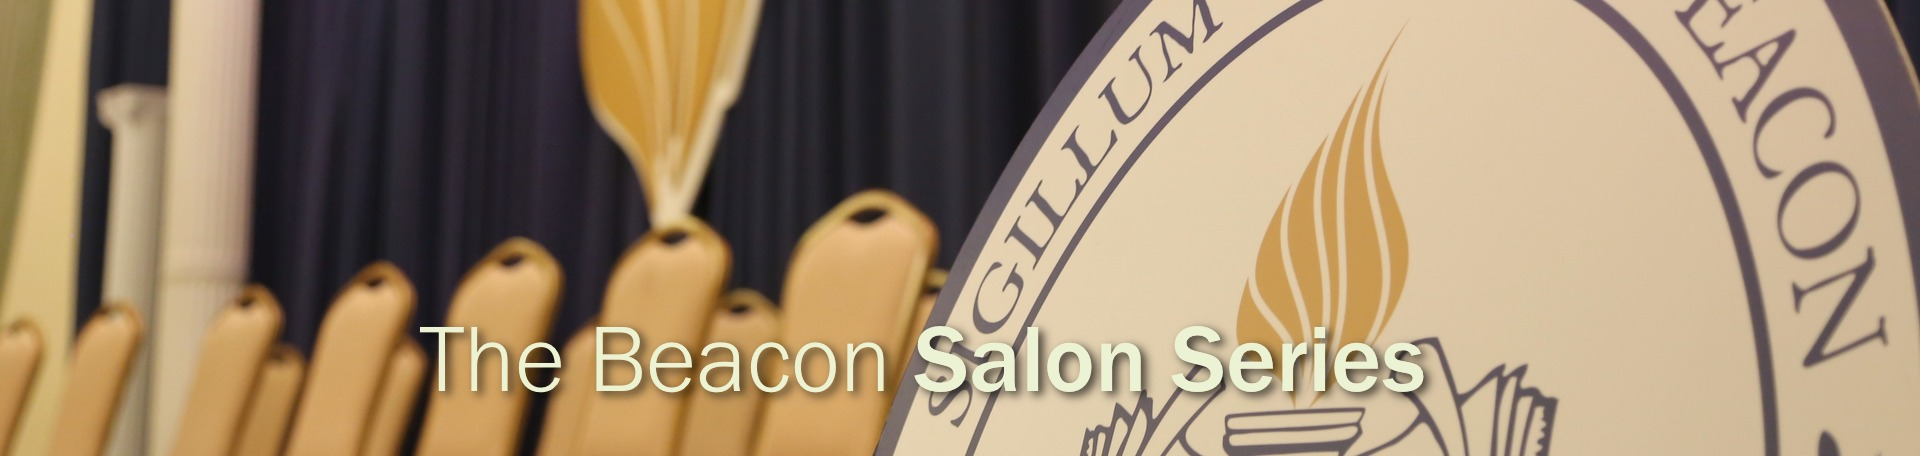 Beacon Salon Series banner